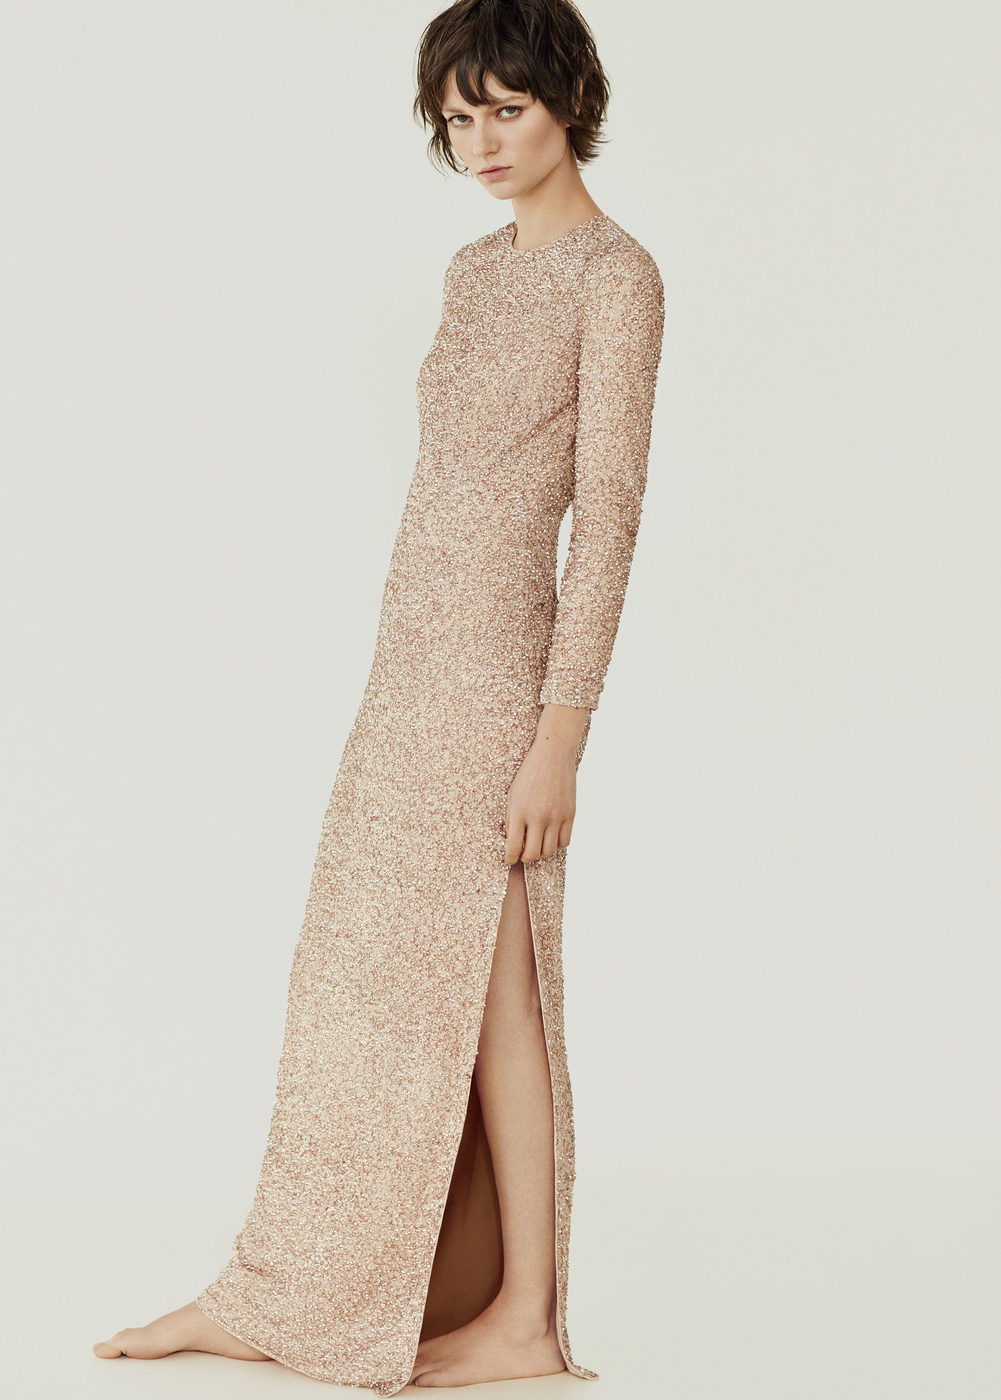 elegant-nude-sequin-gown-dress-long-sleeve-slit